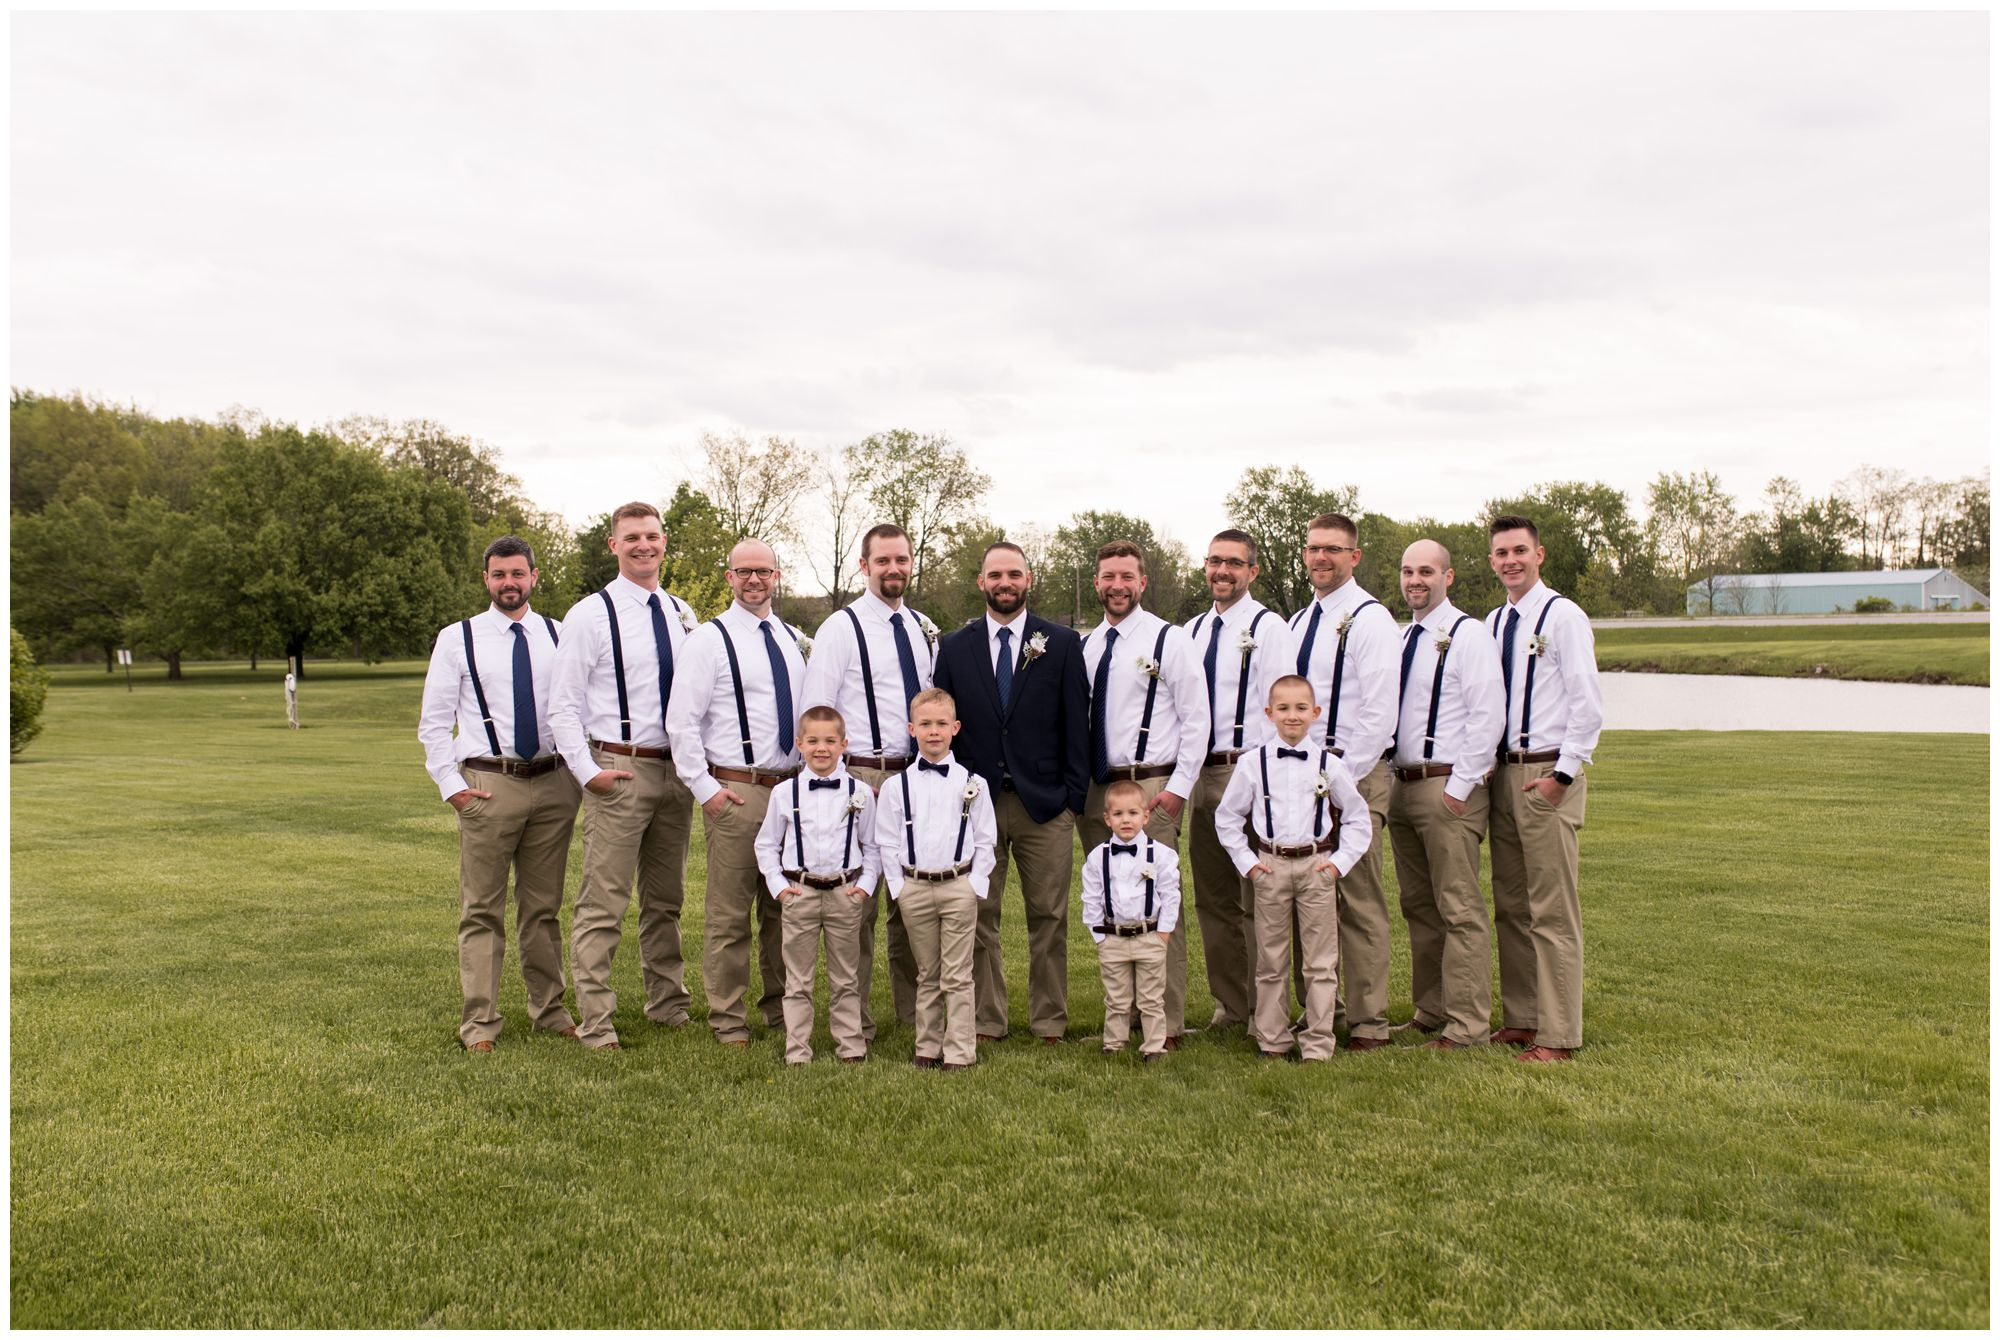 groom with groomsmen and ring bearers at Muncie First Church of the Nazarene